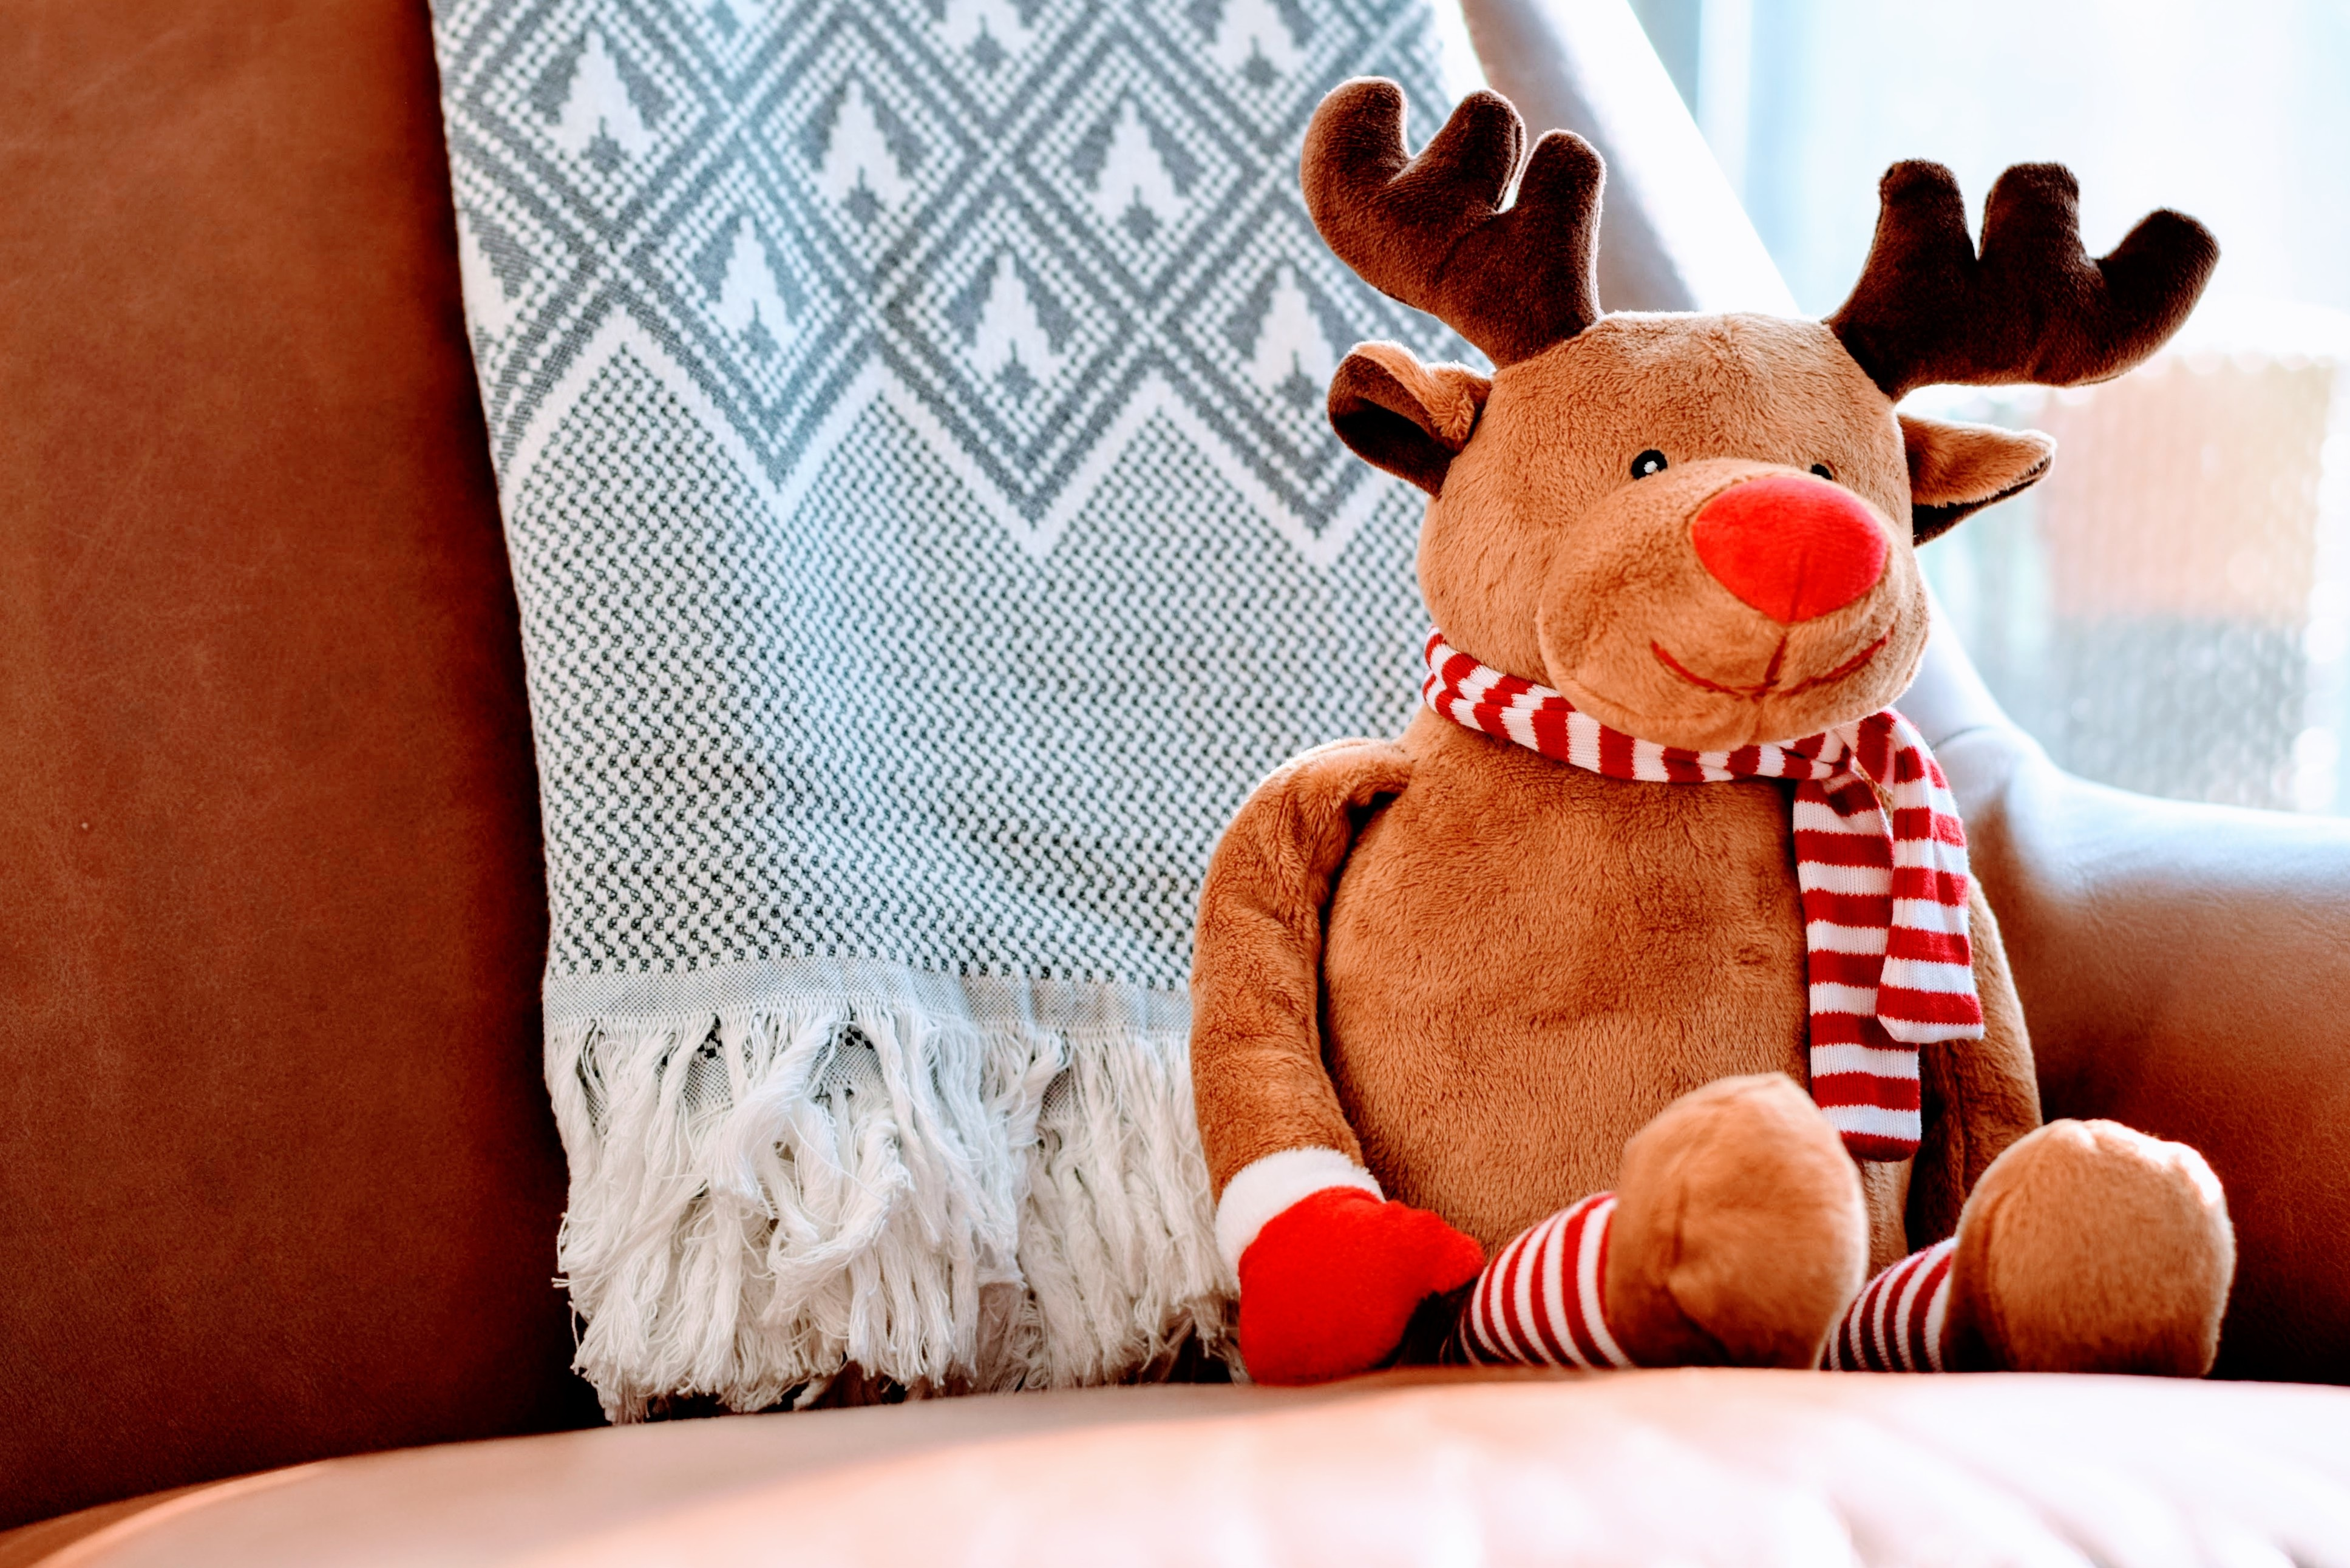 6 Retail Brands That Nail Social Media Marketing Ideas for Christmas Holidays